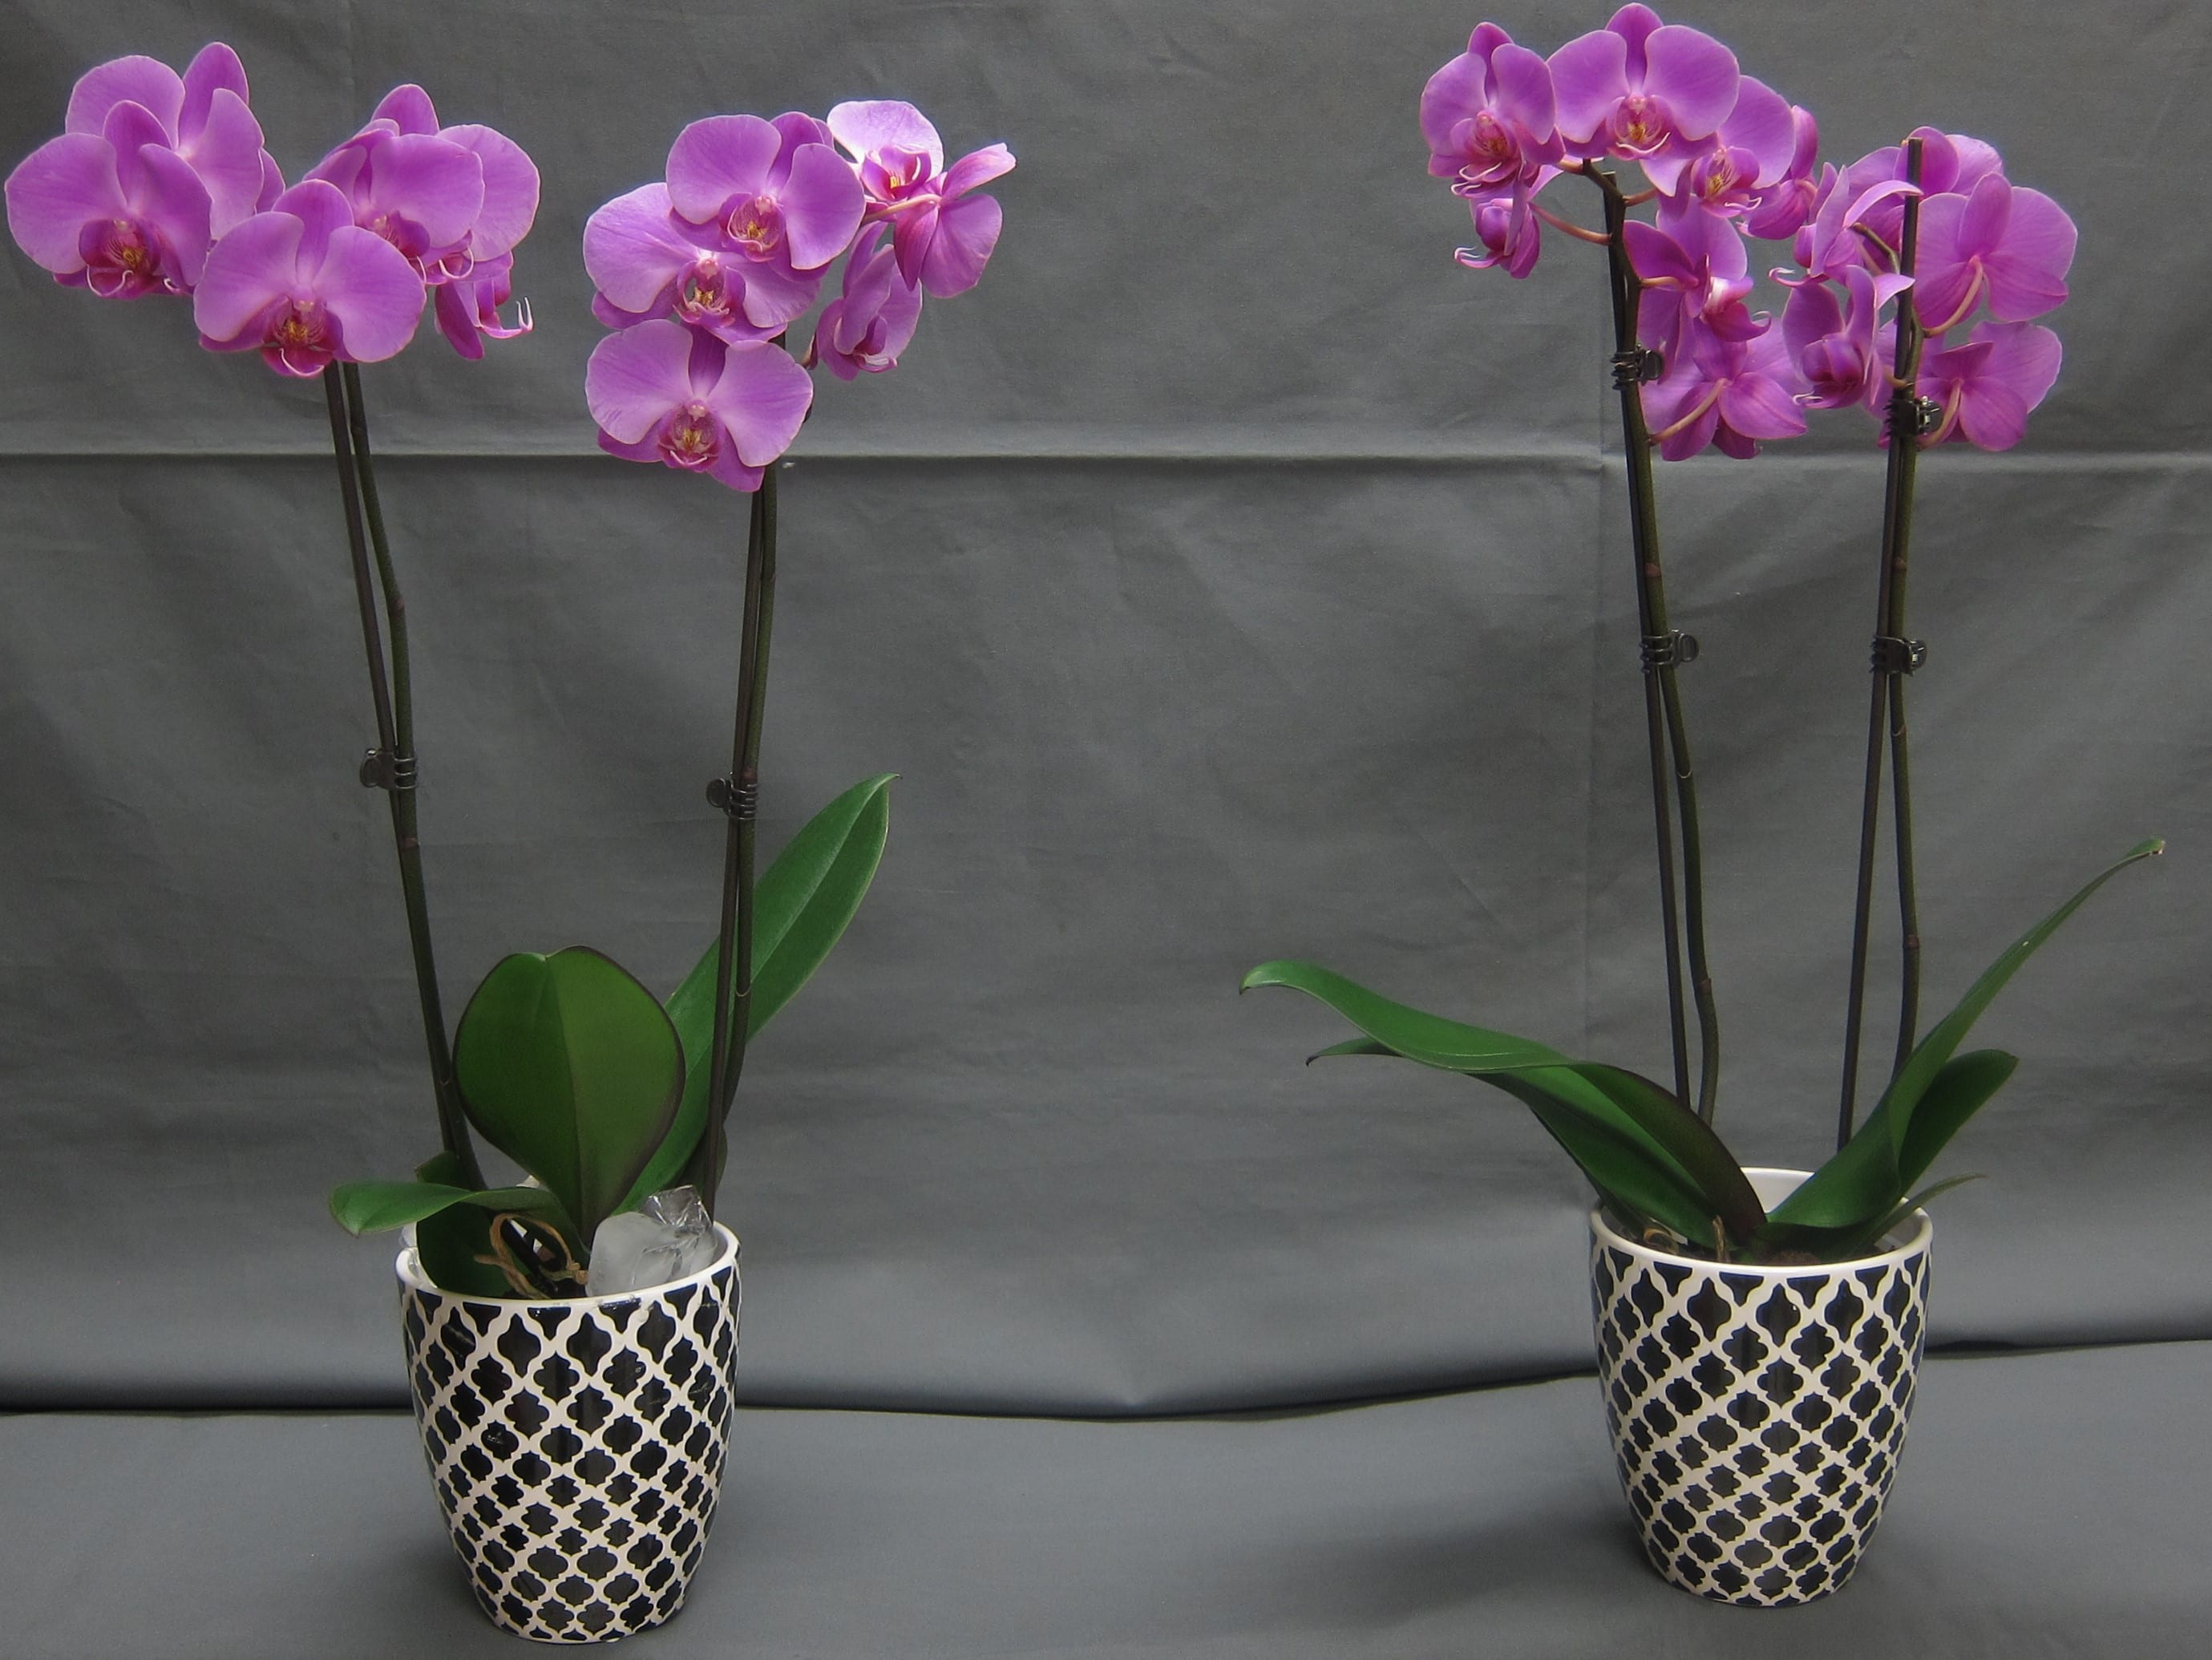 Watering Phalaenopsis orchids with ice cubes | Greenhouse ... on ant house plant, jade house plant, marijuana house plant, dolphin house plant, sword house plant, steel house plant, leaf house plant, avocado house plant, lazarus house plant, lemon house plant, banana house plant,